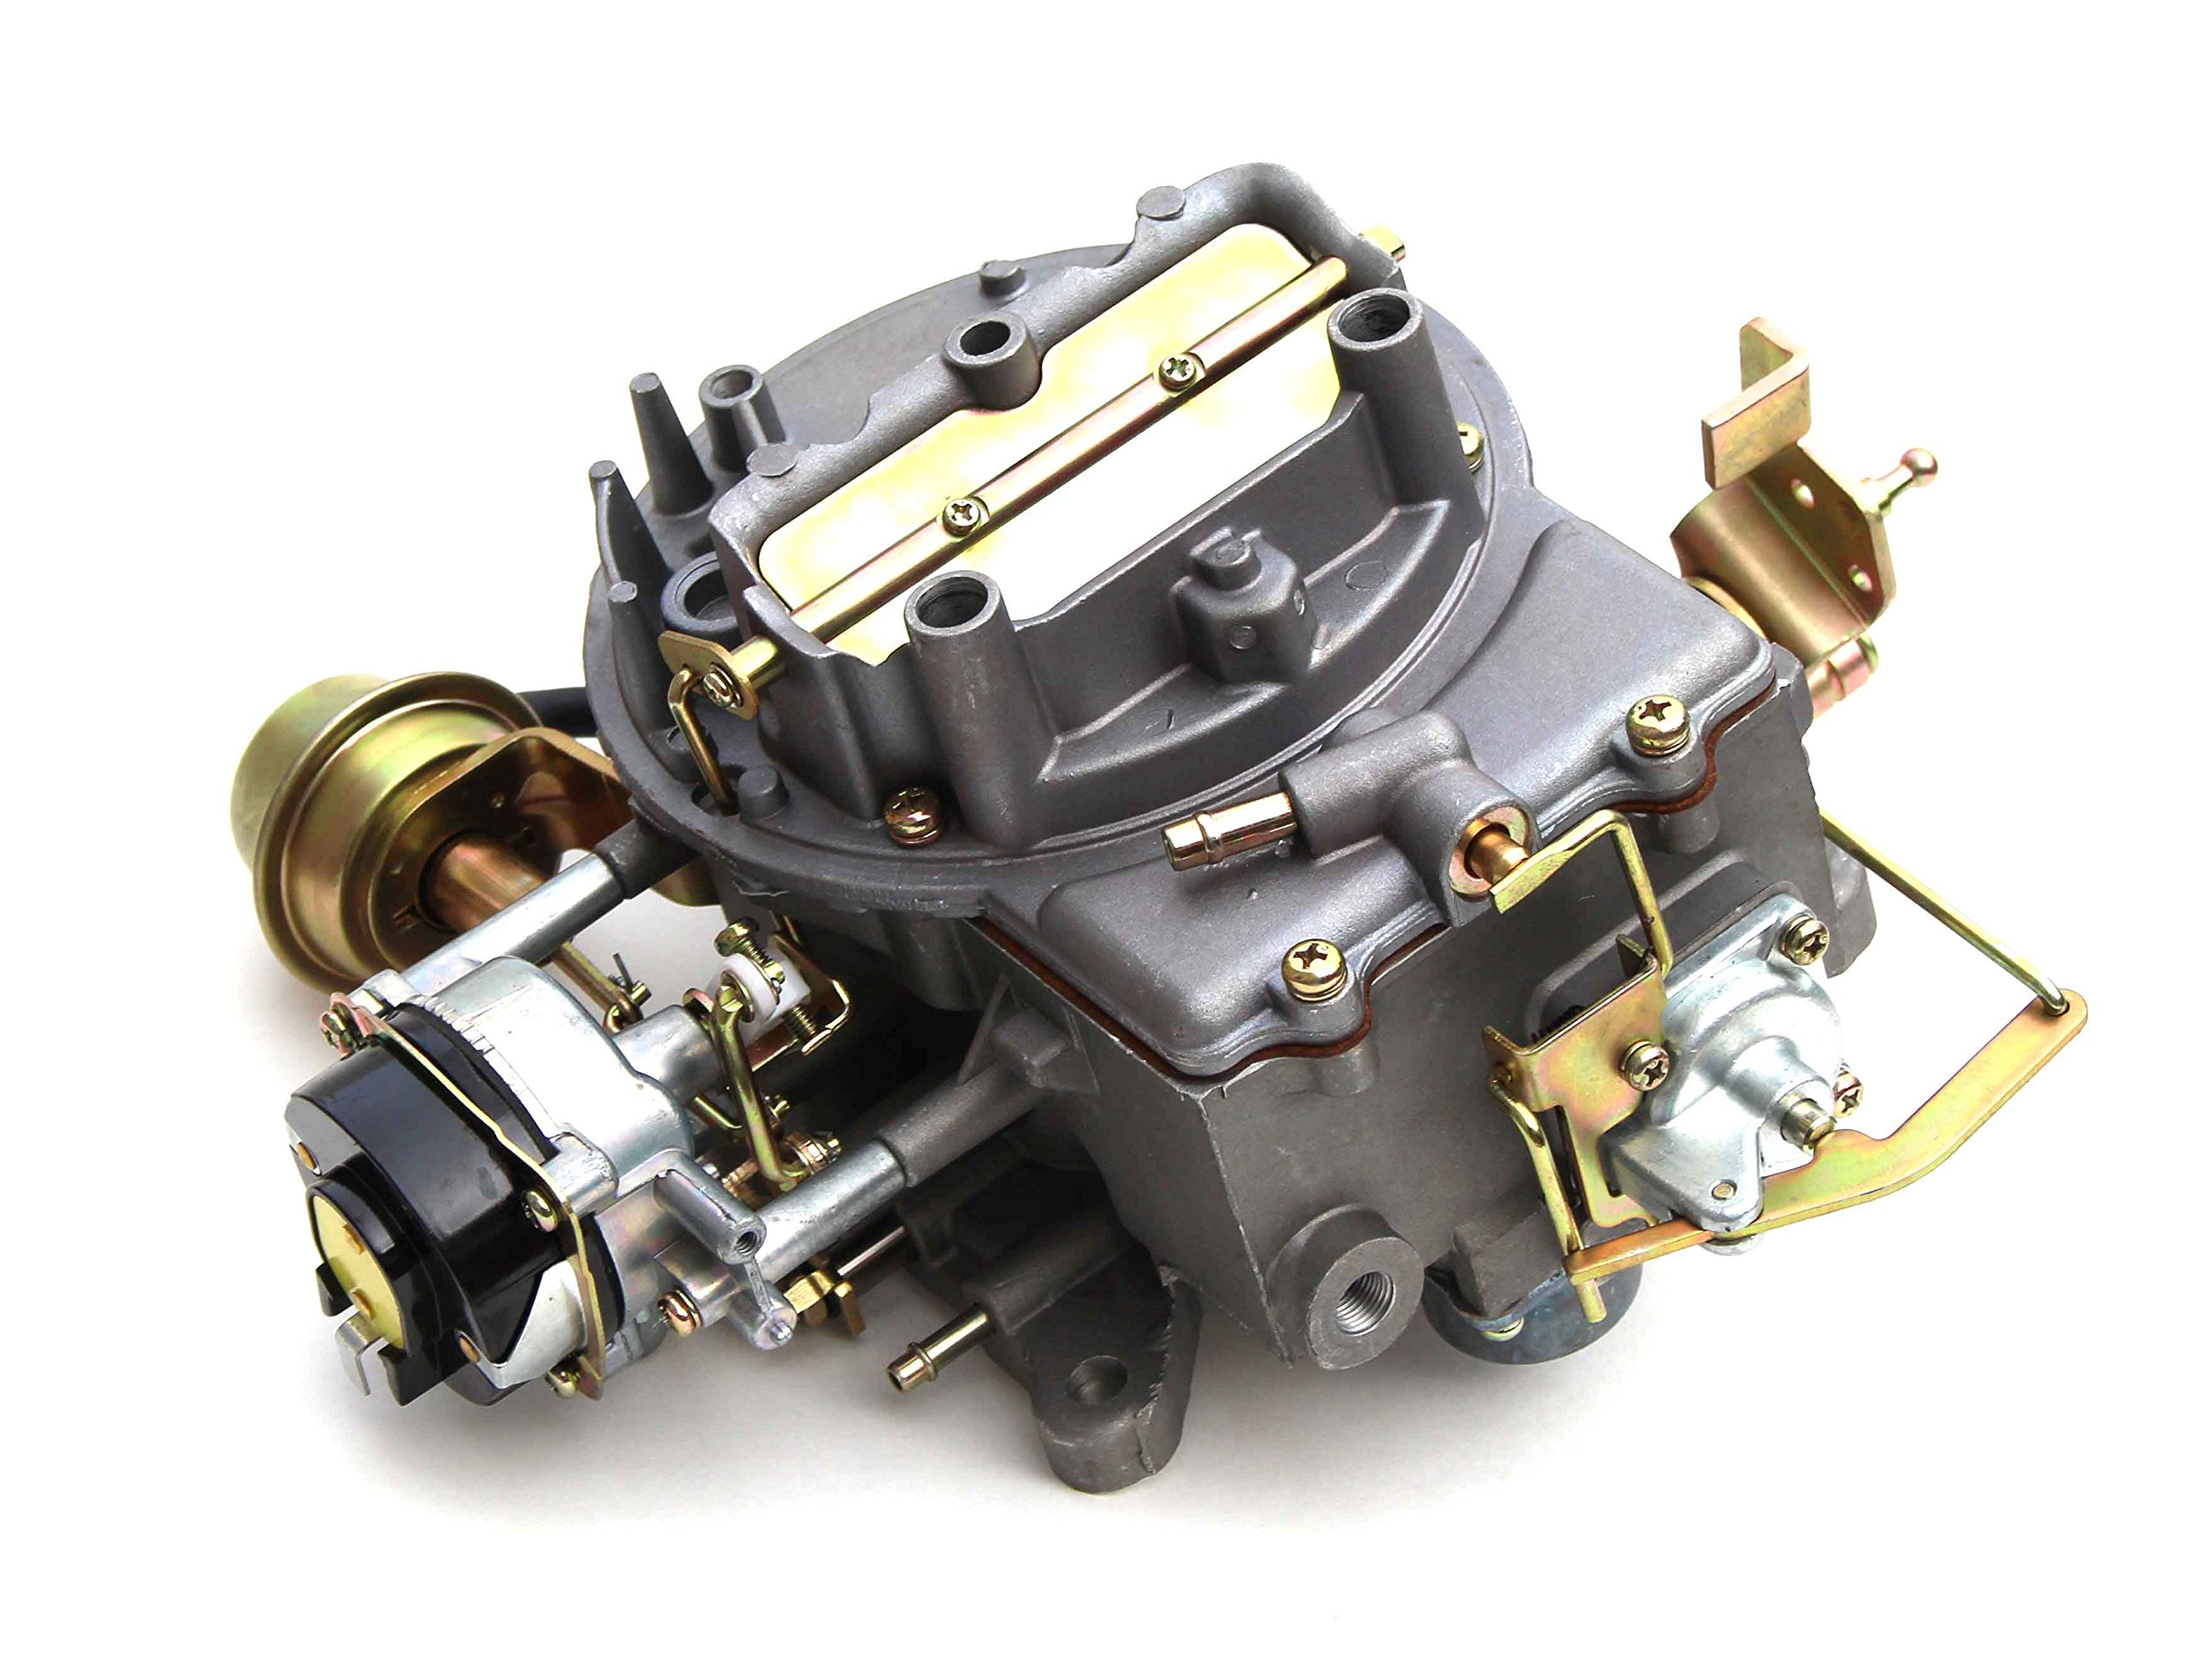 New Carburetor Two 2 Barrel Carburetor Carb 2100 For Ford 289 302 351 Cu Jeep Engine by Auto Parts Prodigy